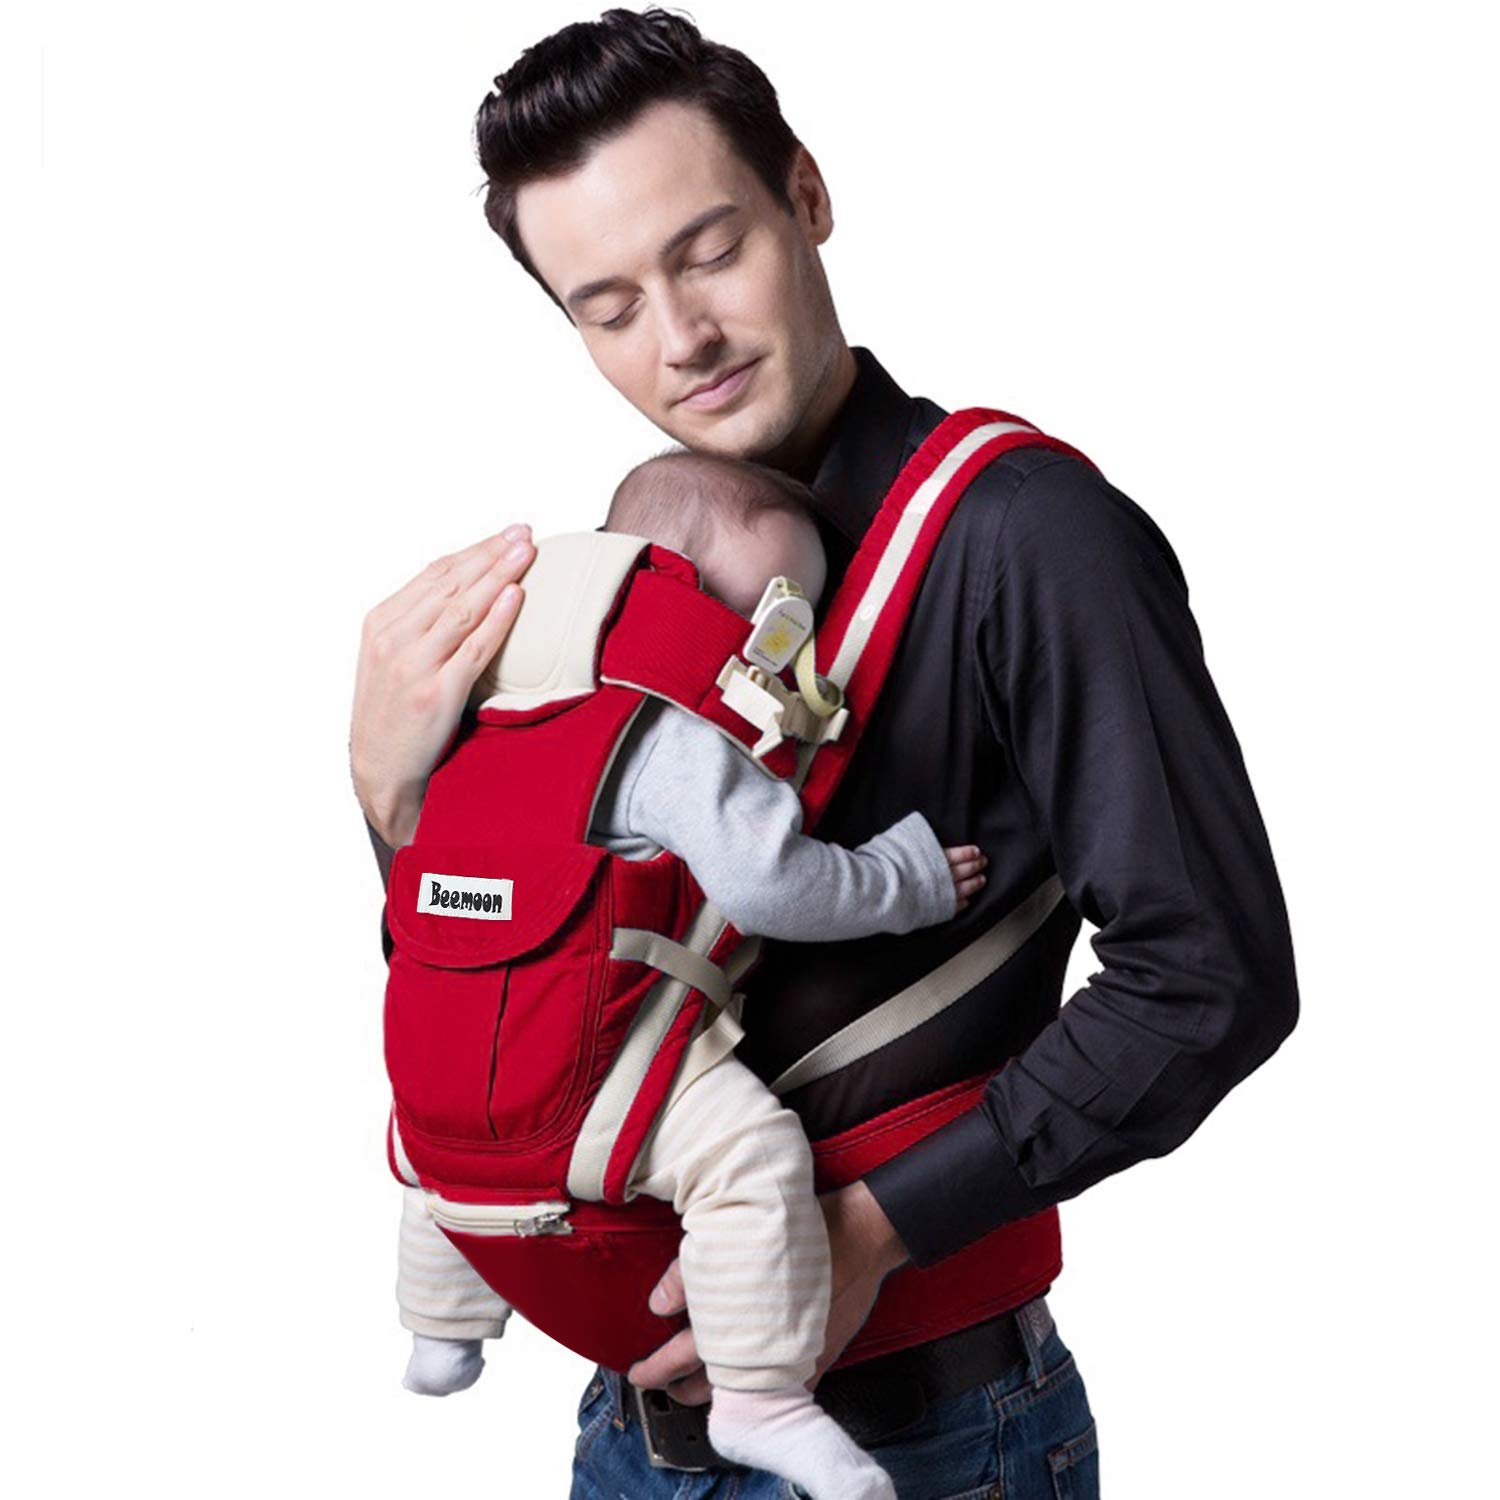 Beemoon 9-in-1 Ergonomic Baby Carrier with Hip Seat, Soft Carrier for All Shapes and Seasons, Perfect for Newborn, Infant Hiking Backpack Carrier BB018